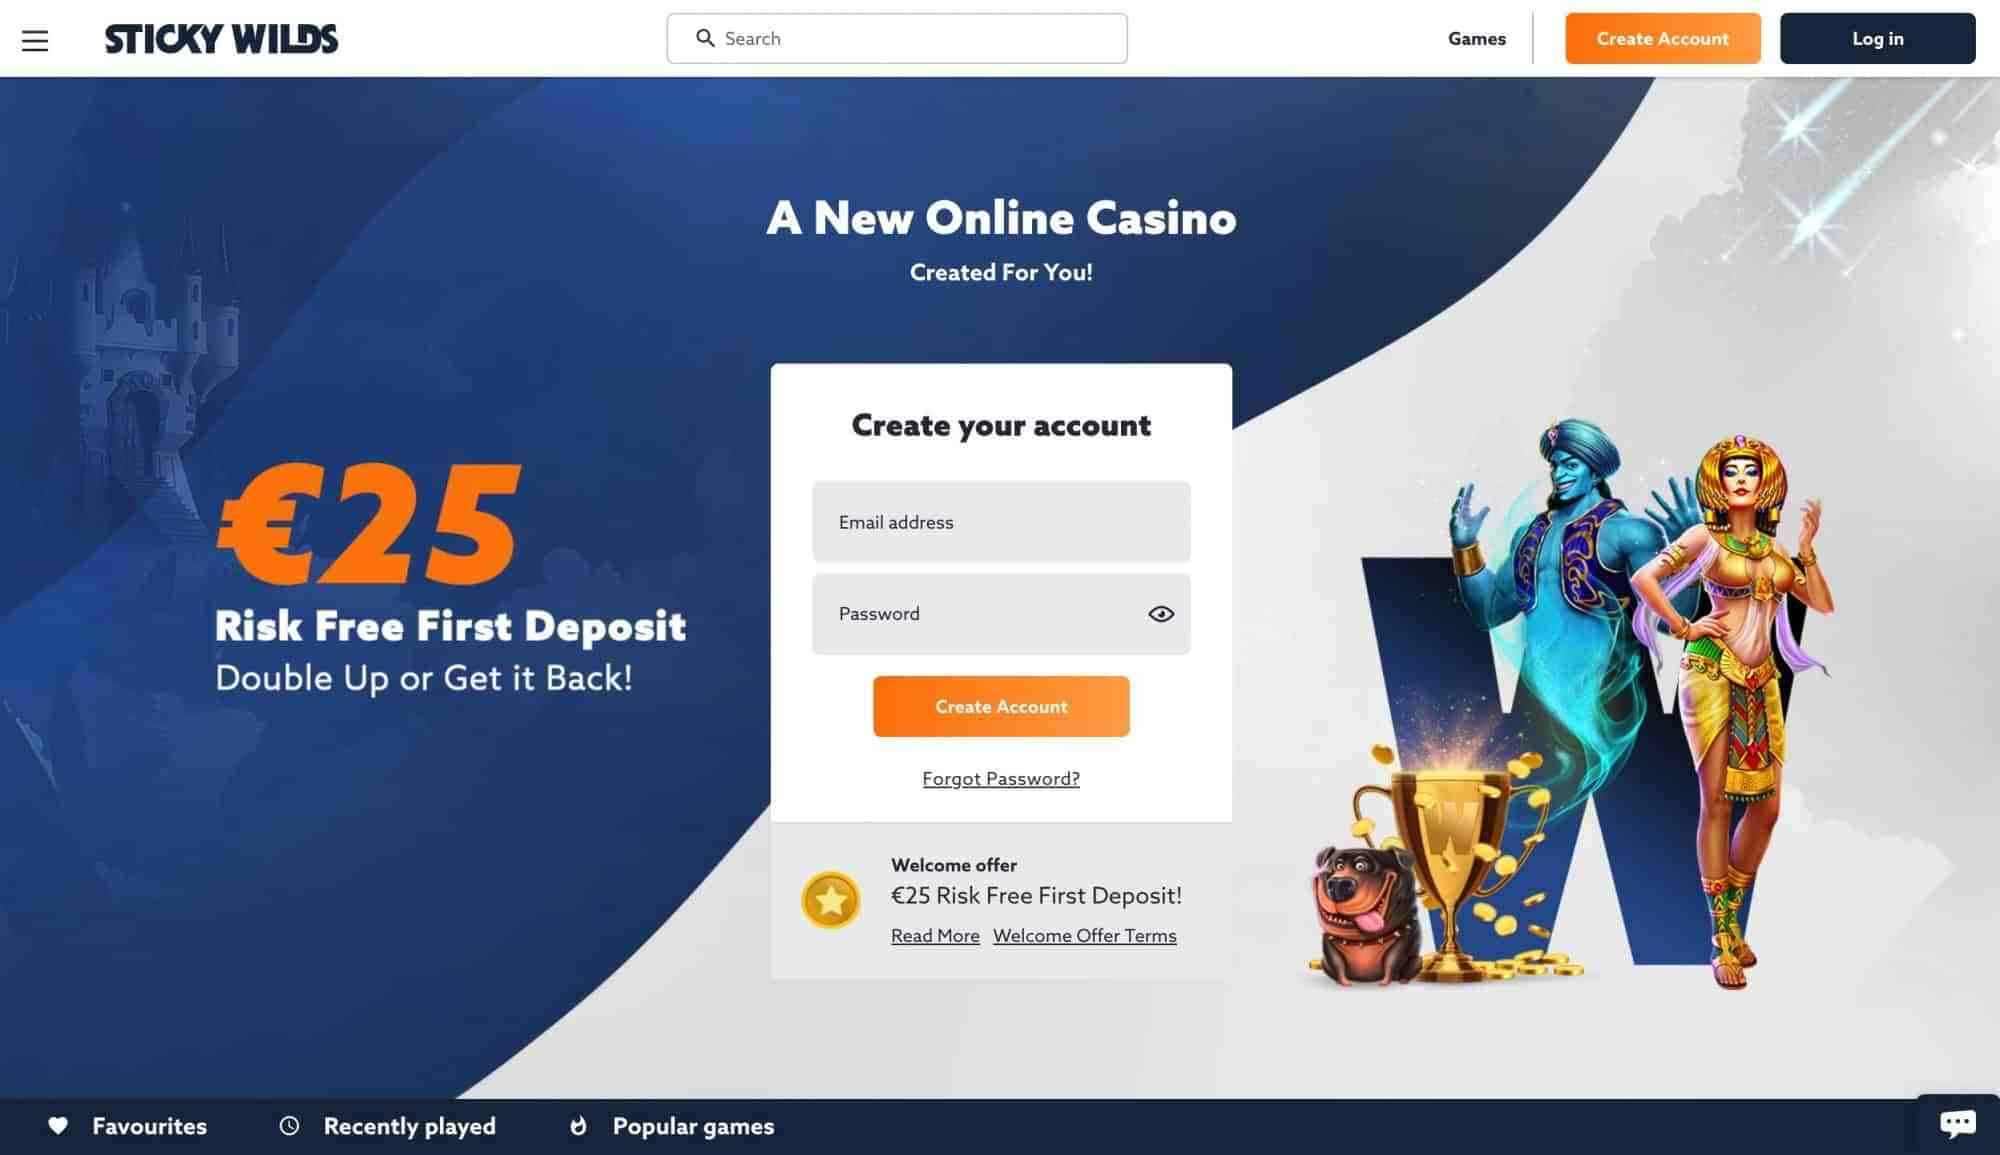 Stickywilds Casino - Get 25 Eur On Your First Deposit Now!